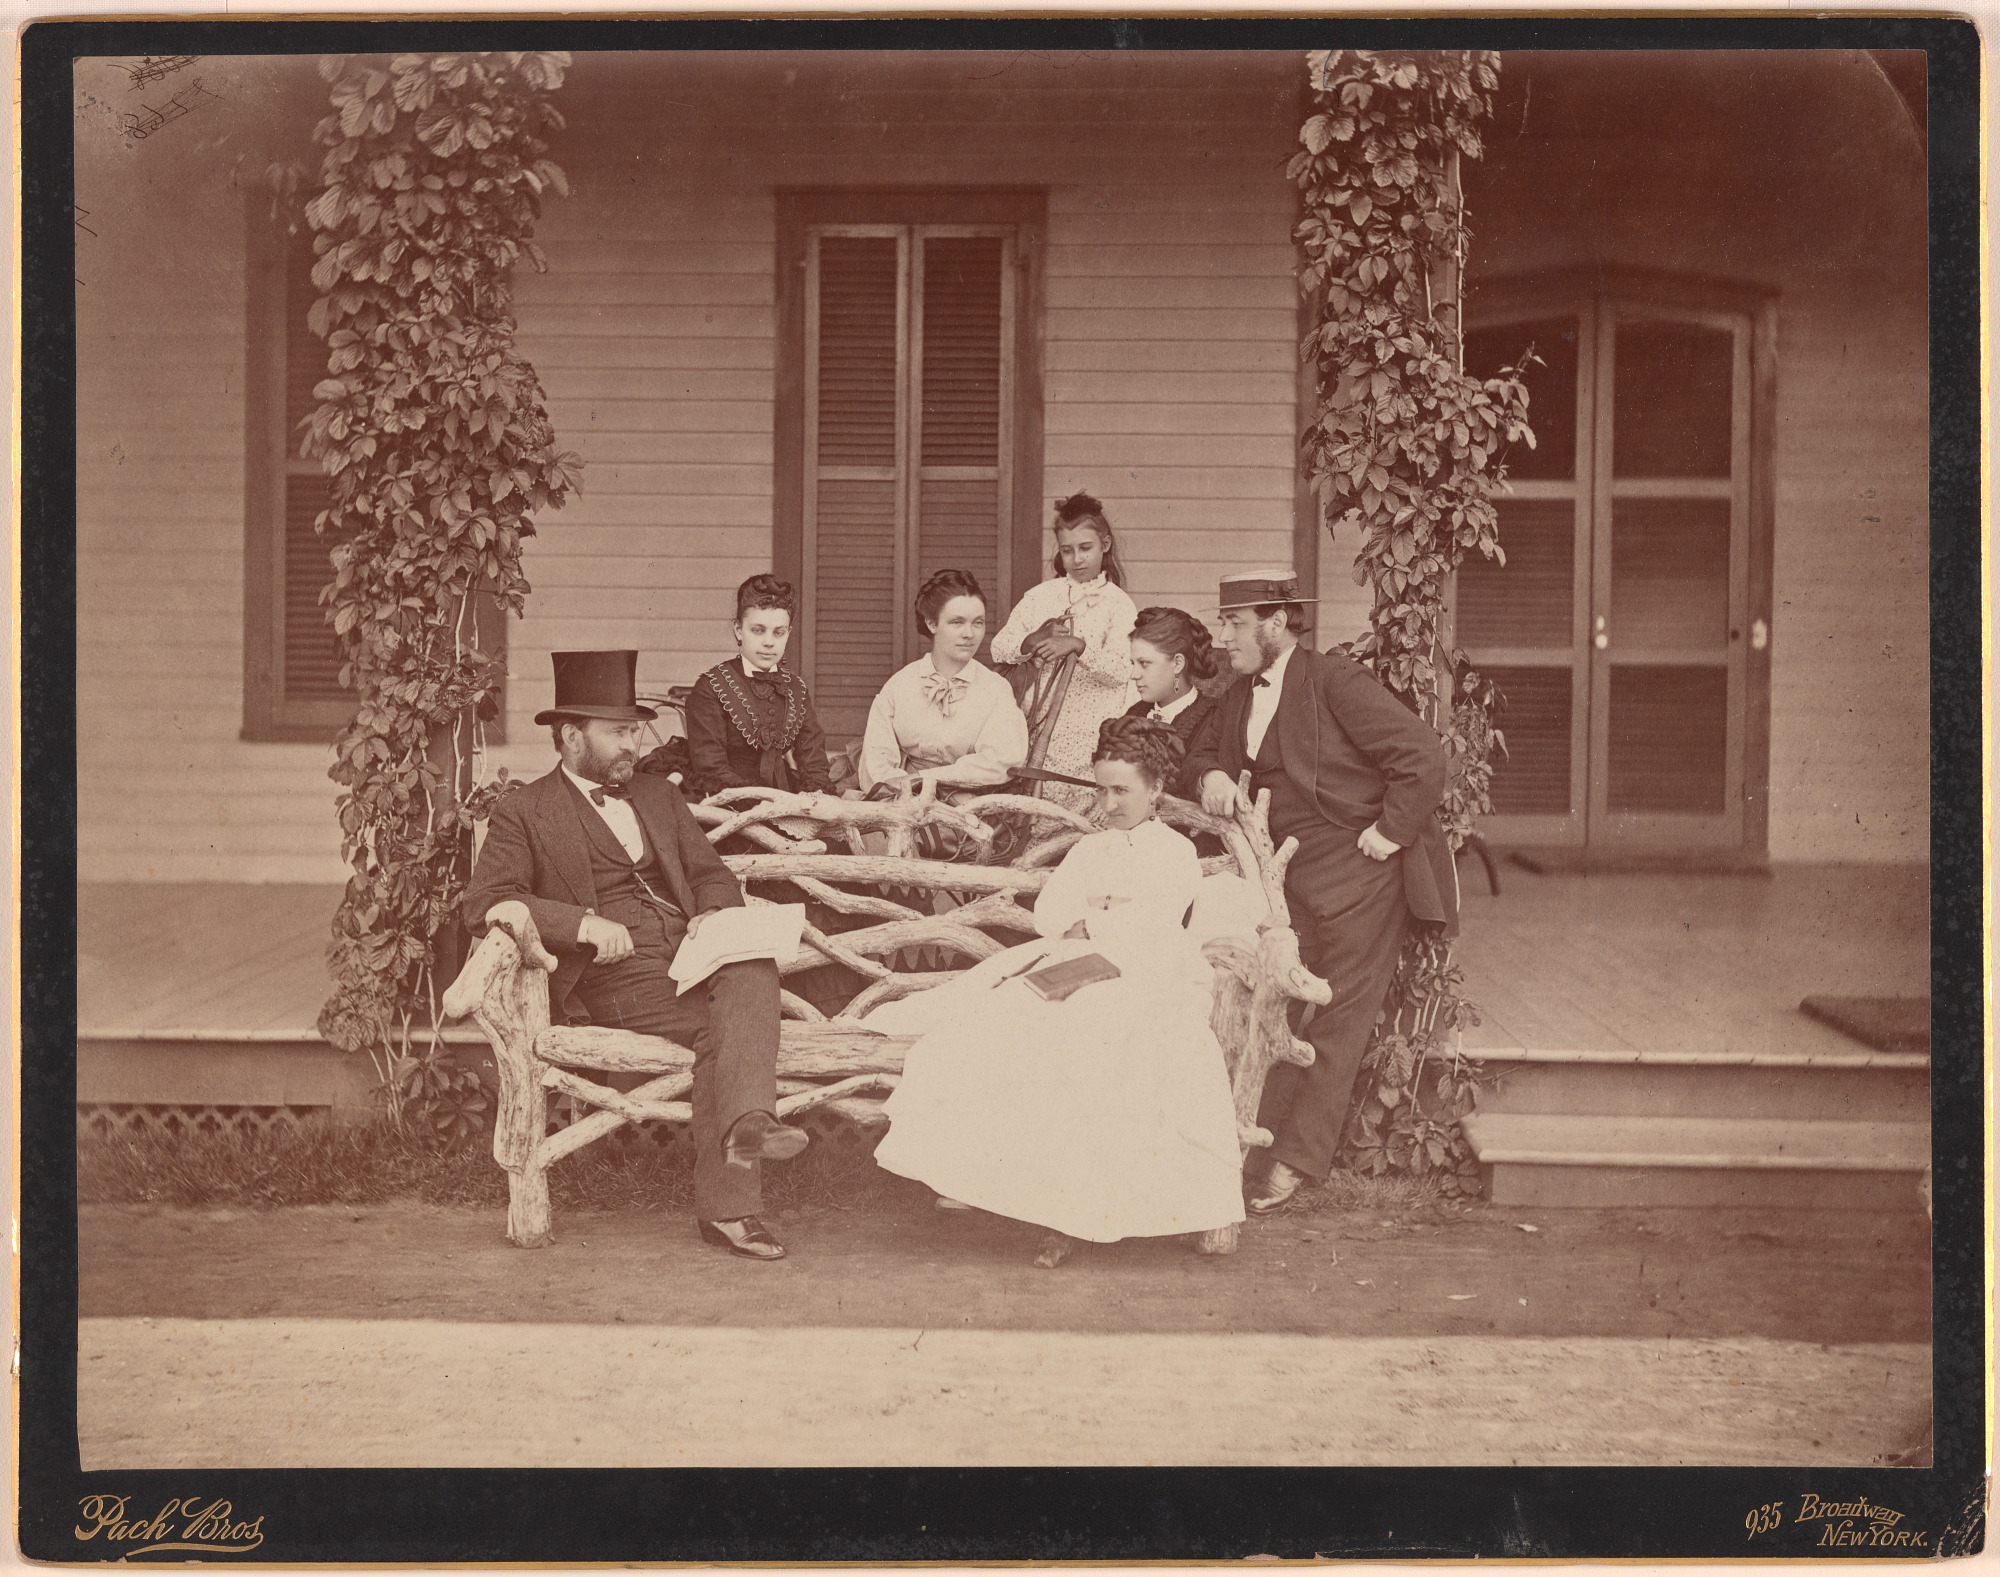 Ulysses S. Grant and Family